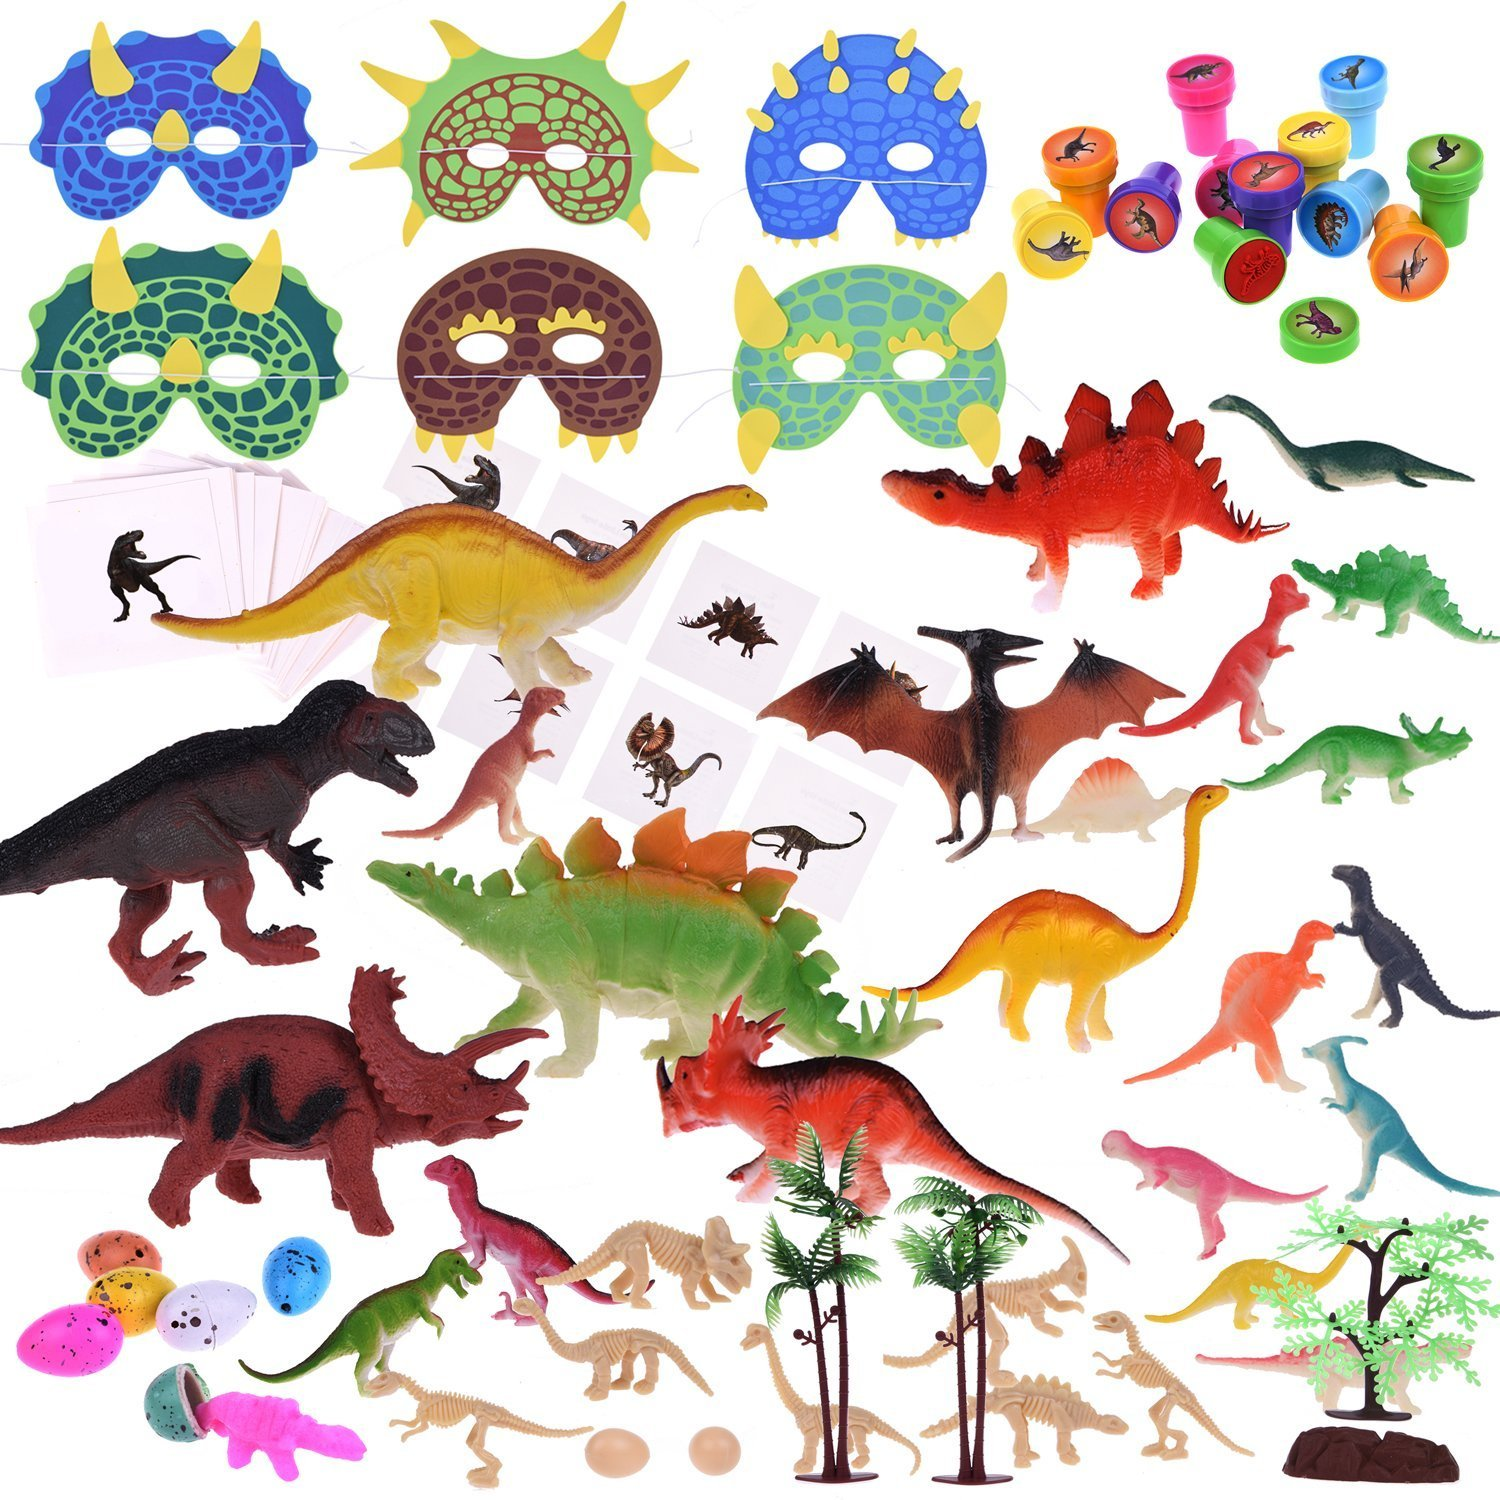 88Pcs Kids Dinosaur Toy Kit Including Assorted Mini Figures, Stamps, Masks, Dinosaur Eggs, Sticker Tattoos and More Great for Dinosaur Party Supplies, Kids Prizes